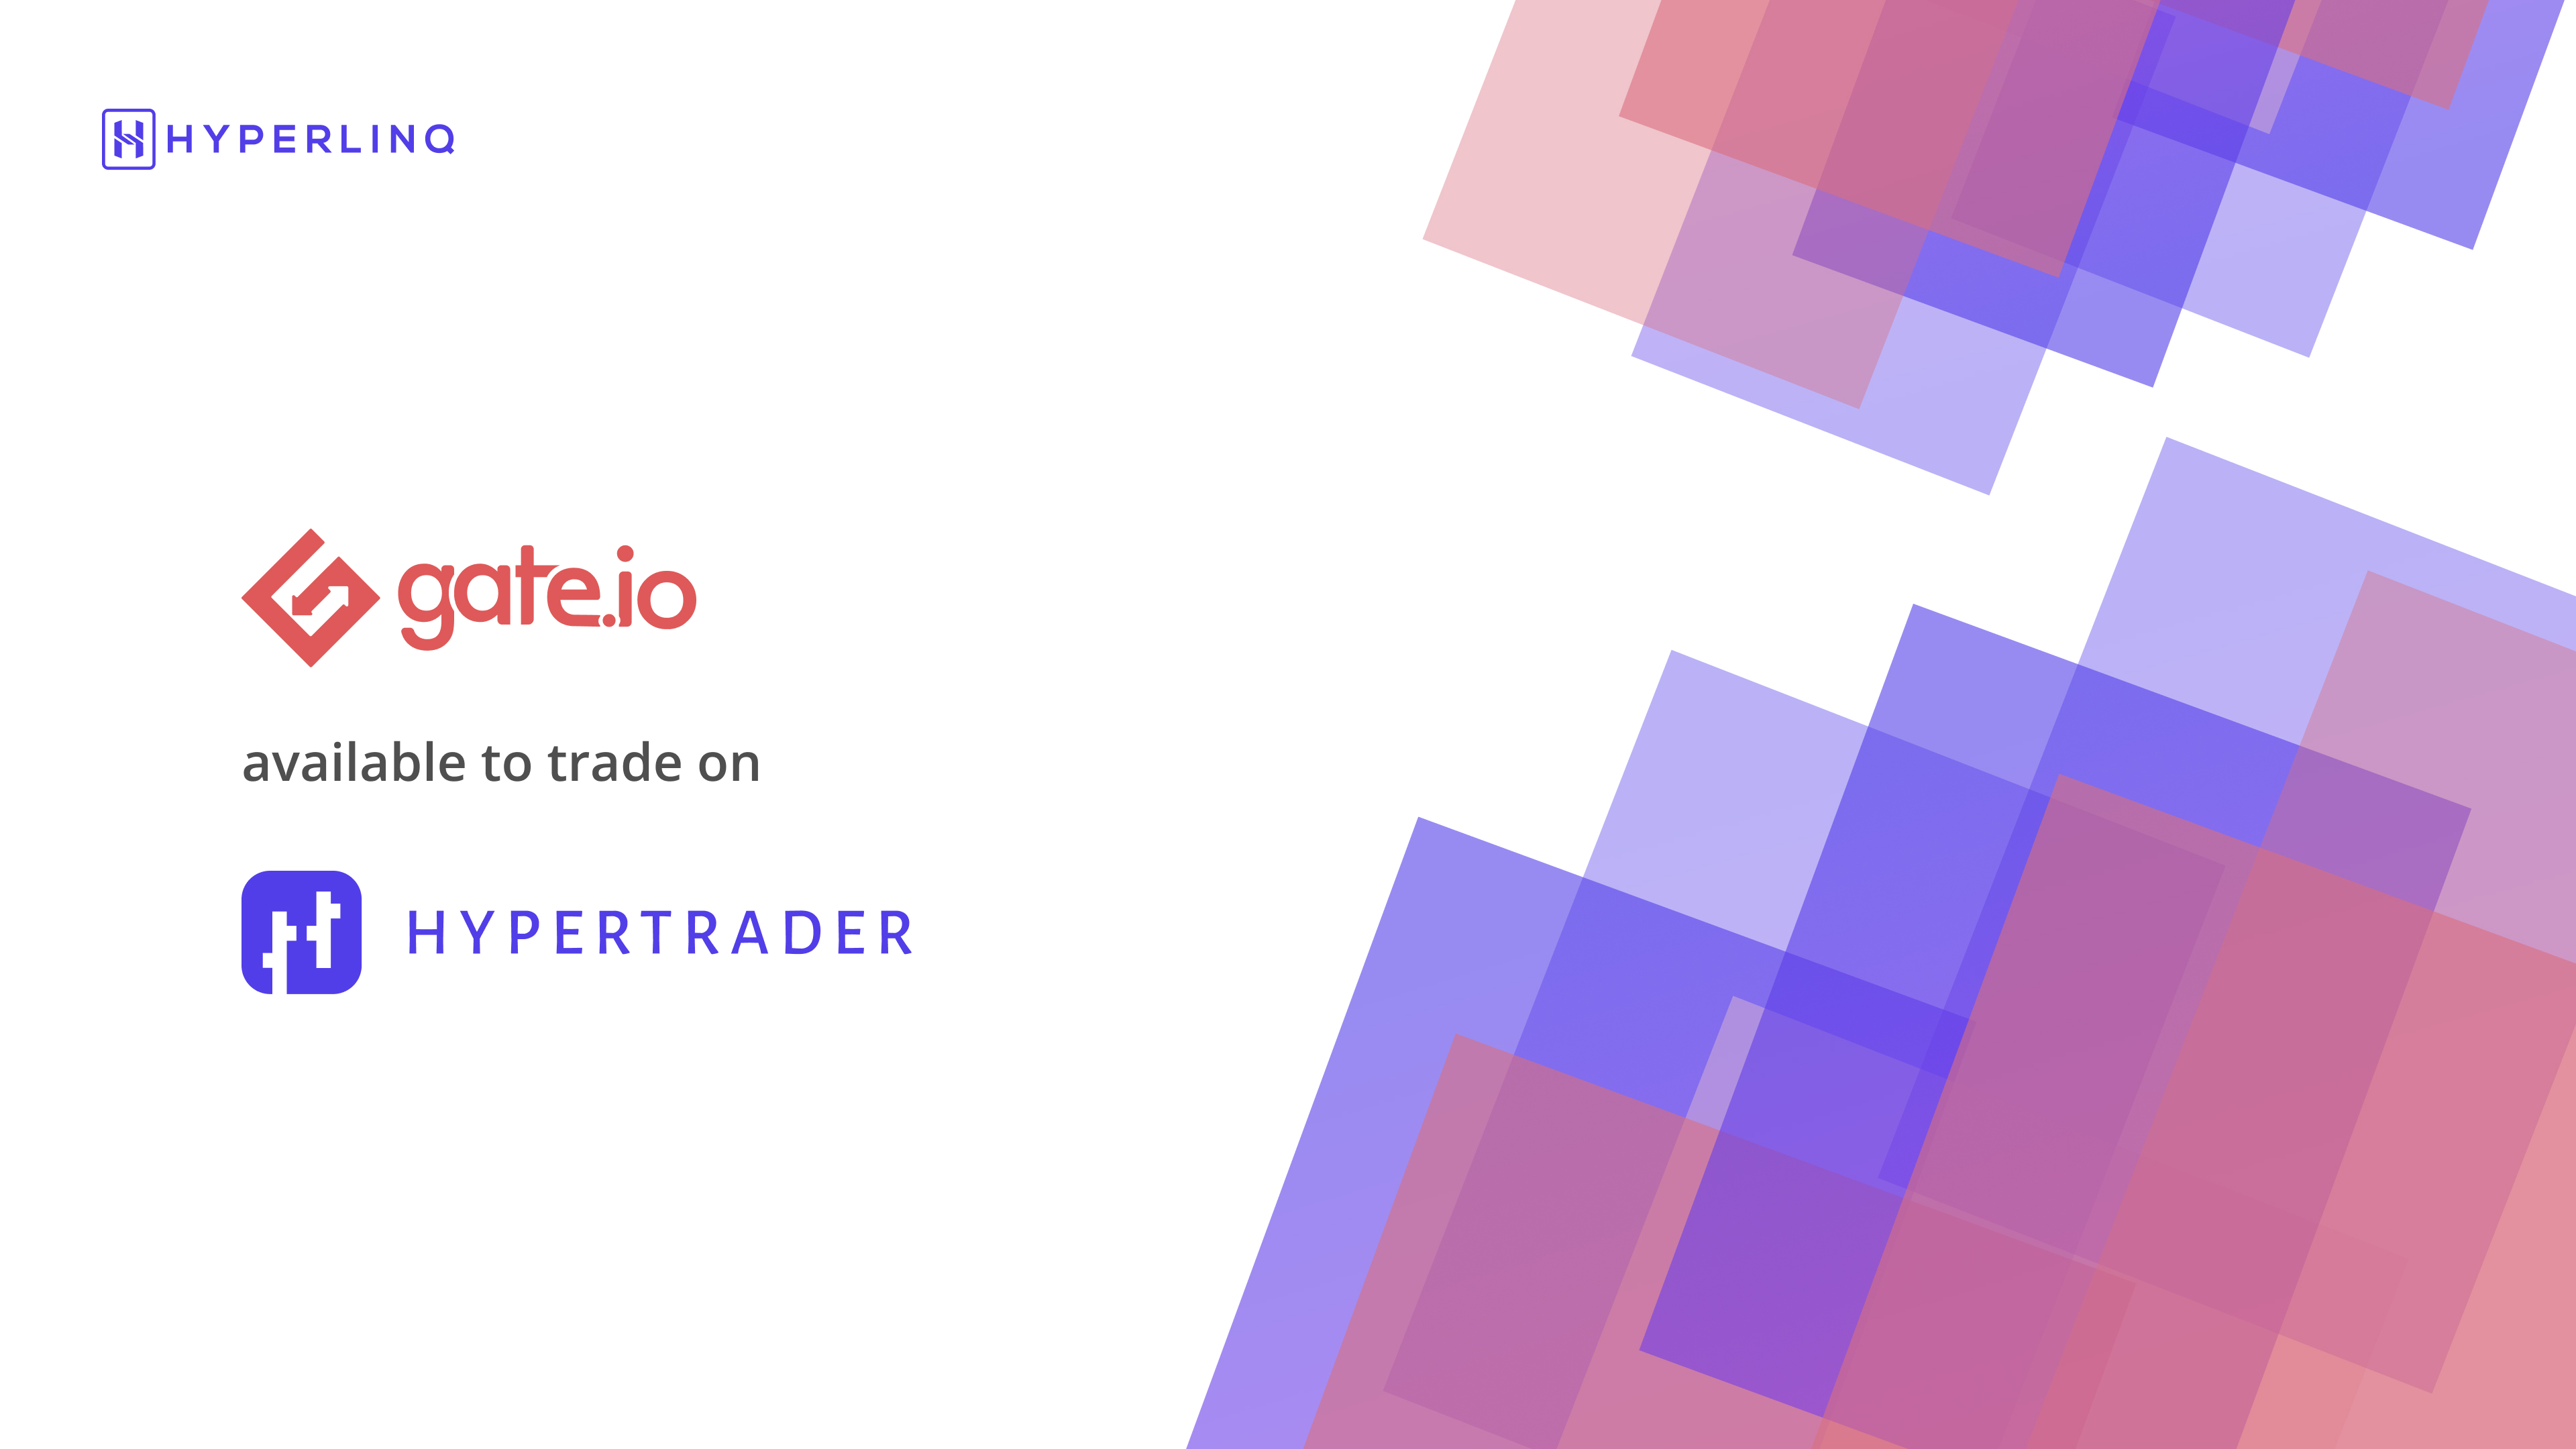 Now Trade on Gate.io with HyperTrader